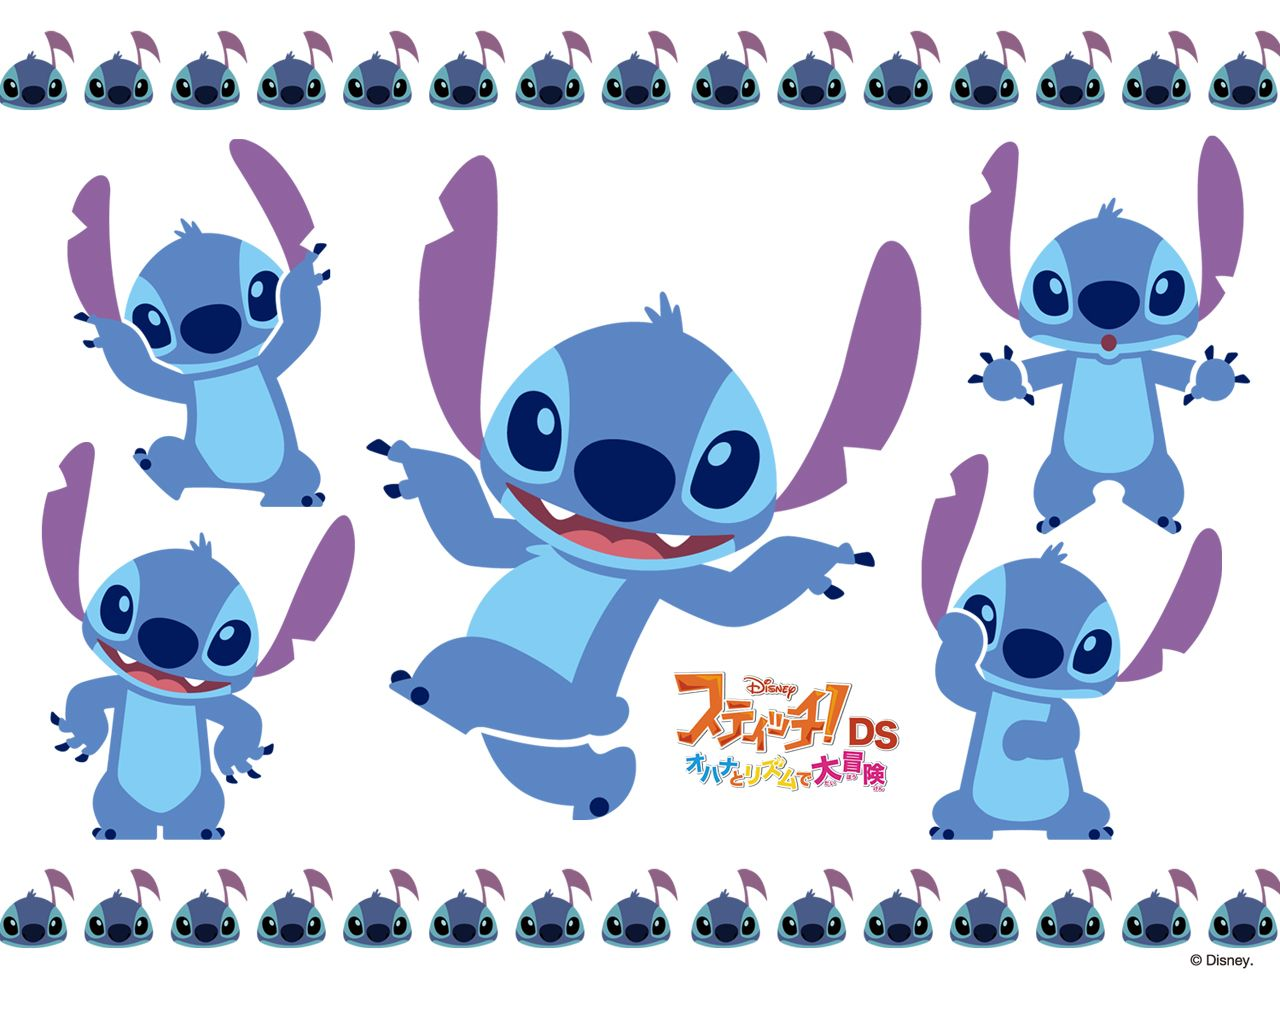 Cute Stitch Wallpapers - Top Free Cute Stitch Backgrounds - WallpaperAccess